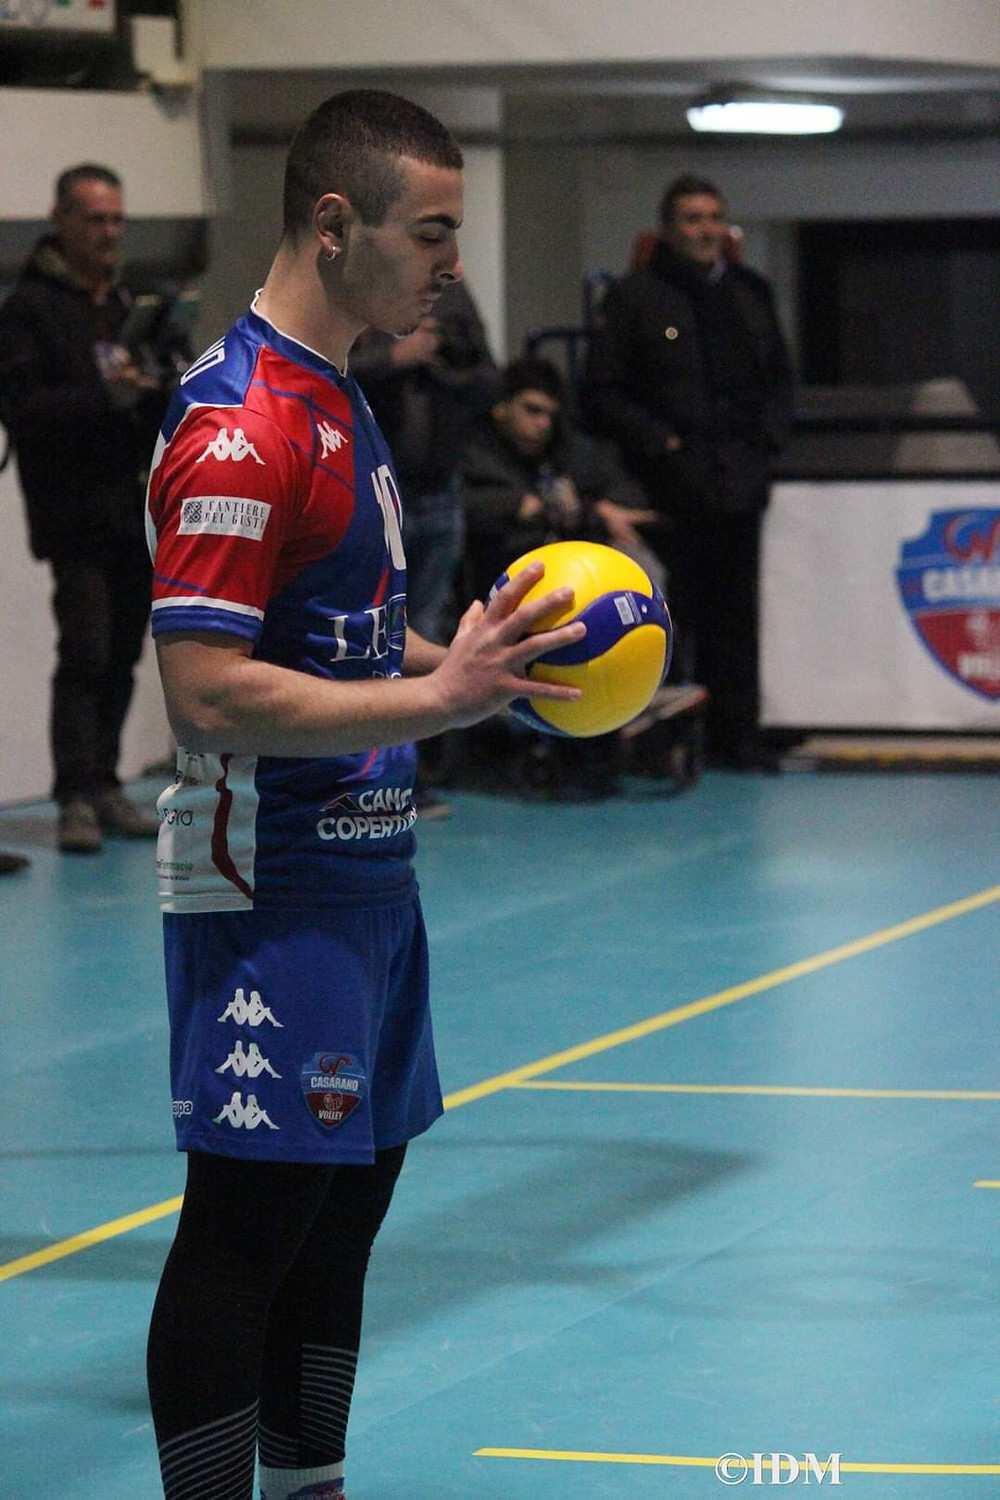 Luca Stefano Leo Shoes Casarano Volley